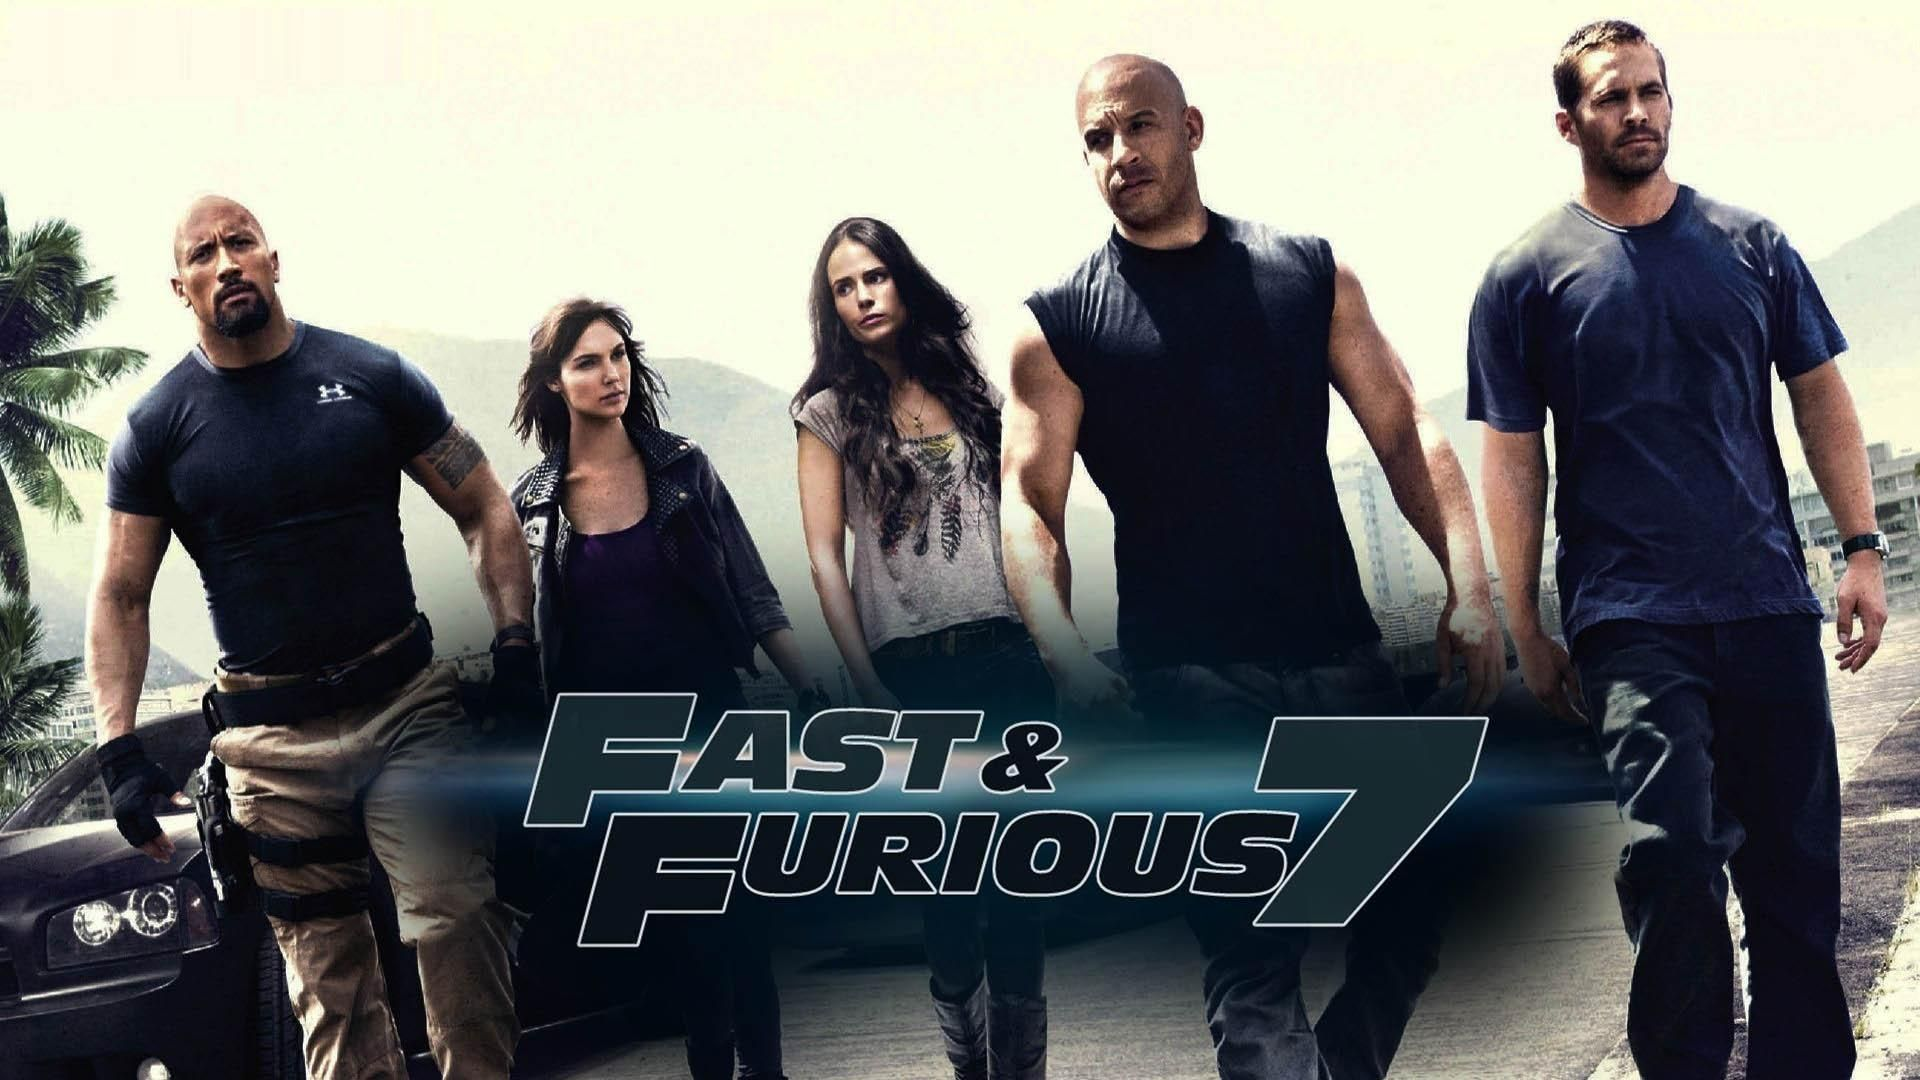 Fast and furious 7 in hindi 720p download kickass